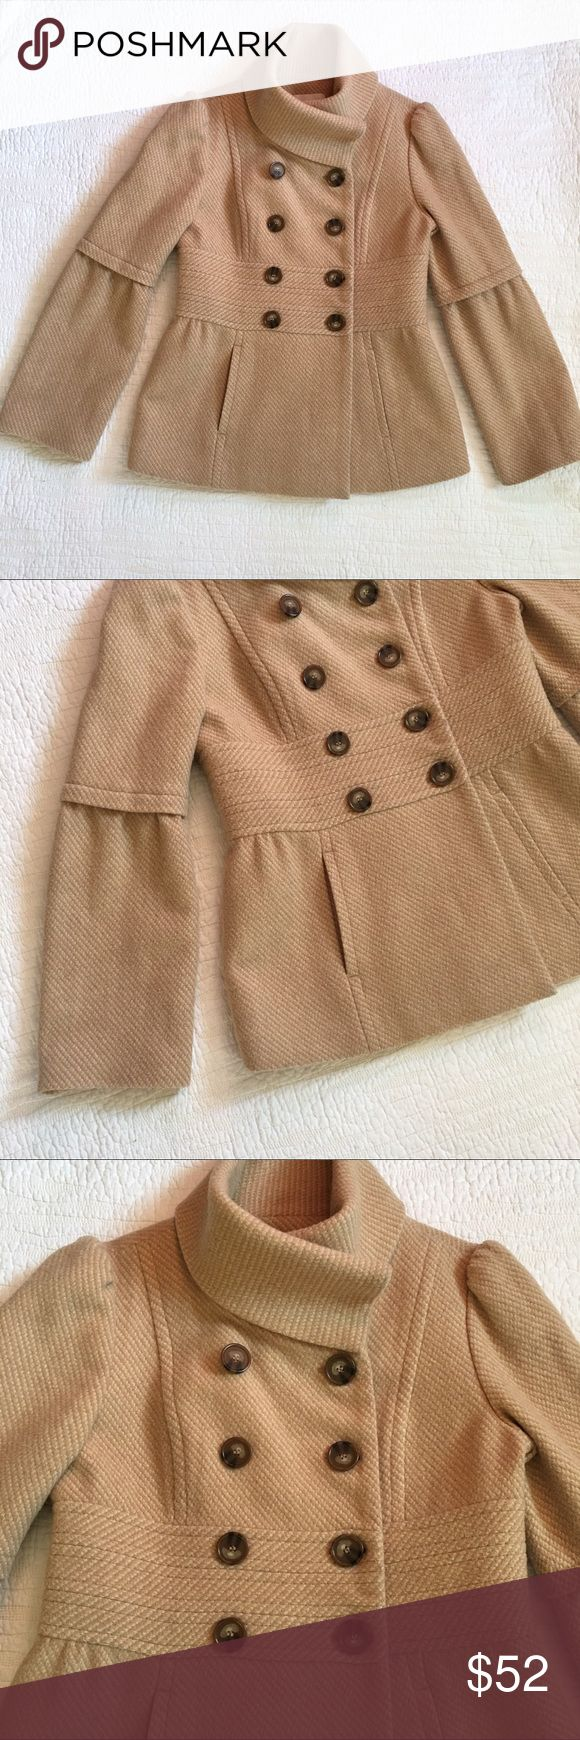 """Loft Wool Bell-Sleeve Funnel-Neck Pea Coat Gorgeous tan wool blend coat from Loft. This waist length coat features a peplum skirted waist, funnel-neck detail, and bell sleeves. Big tortoise shell buttons add detail, as does a thick waist band. This coat is gorgeous. Coral piping along lining is another sweet detail. In excellent condition with no noticeable flaws except a very tiny hole on the collar - not noticeable unless you look. See last photo. Size 4. Appx 36"""" bust, 26"""" length, 33""""…"""